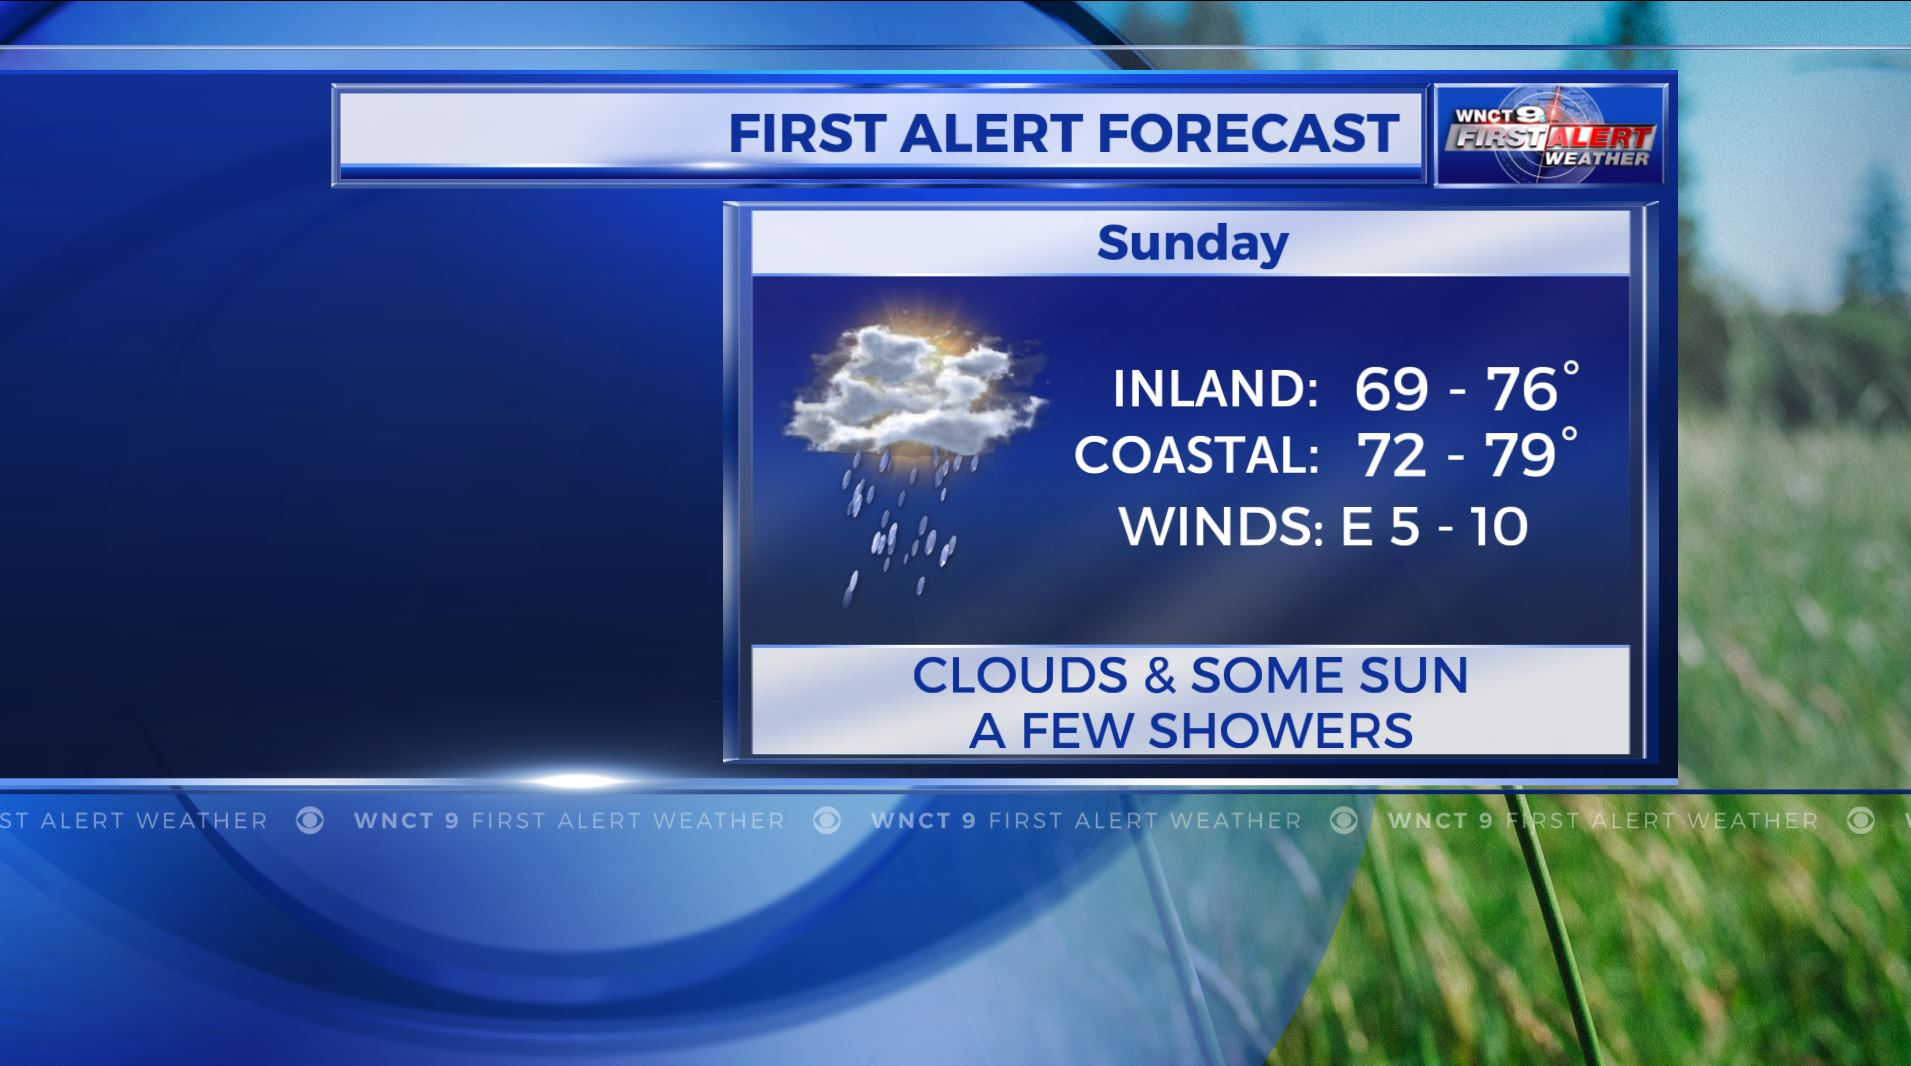 Rain later today; Chance of storms Sunday